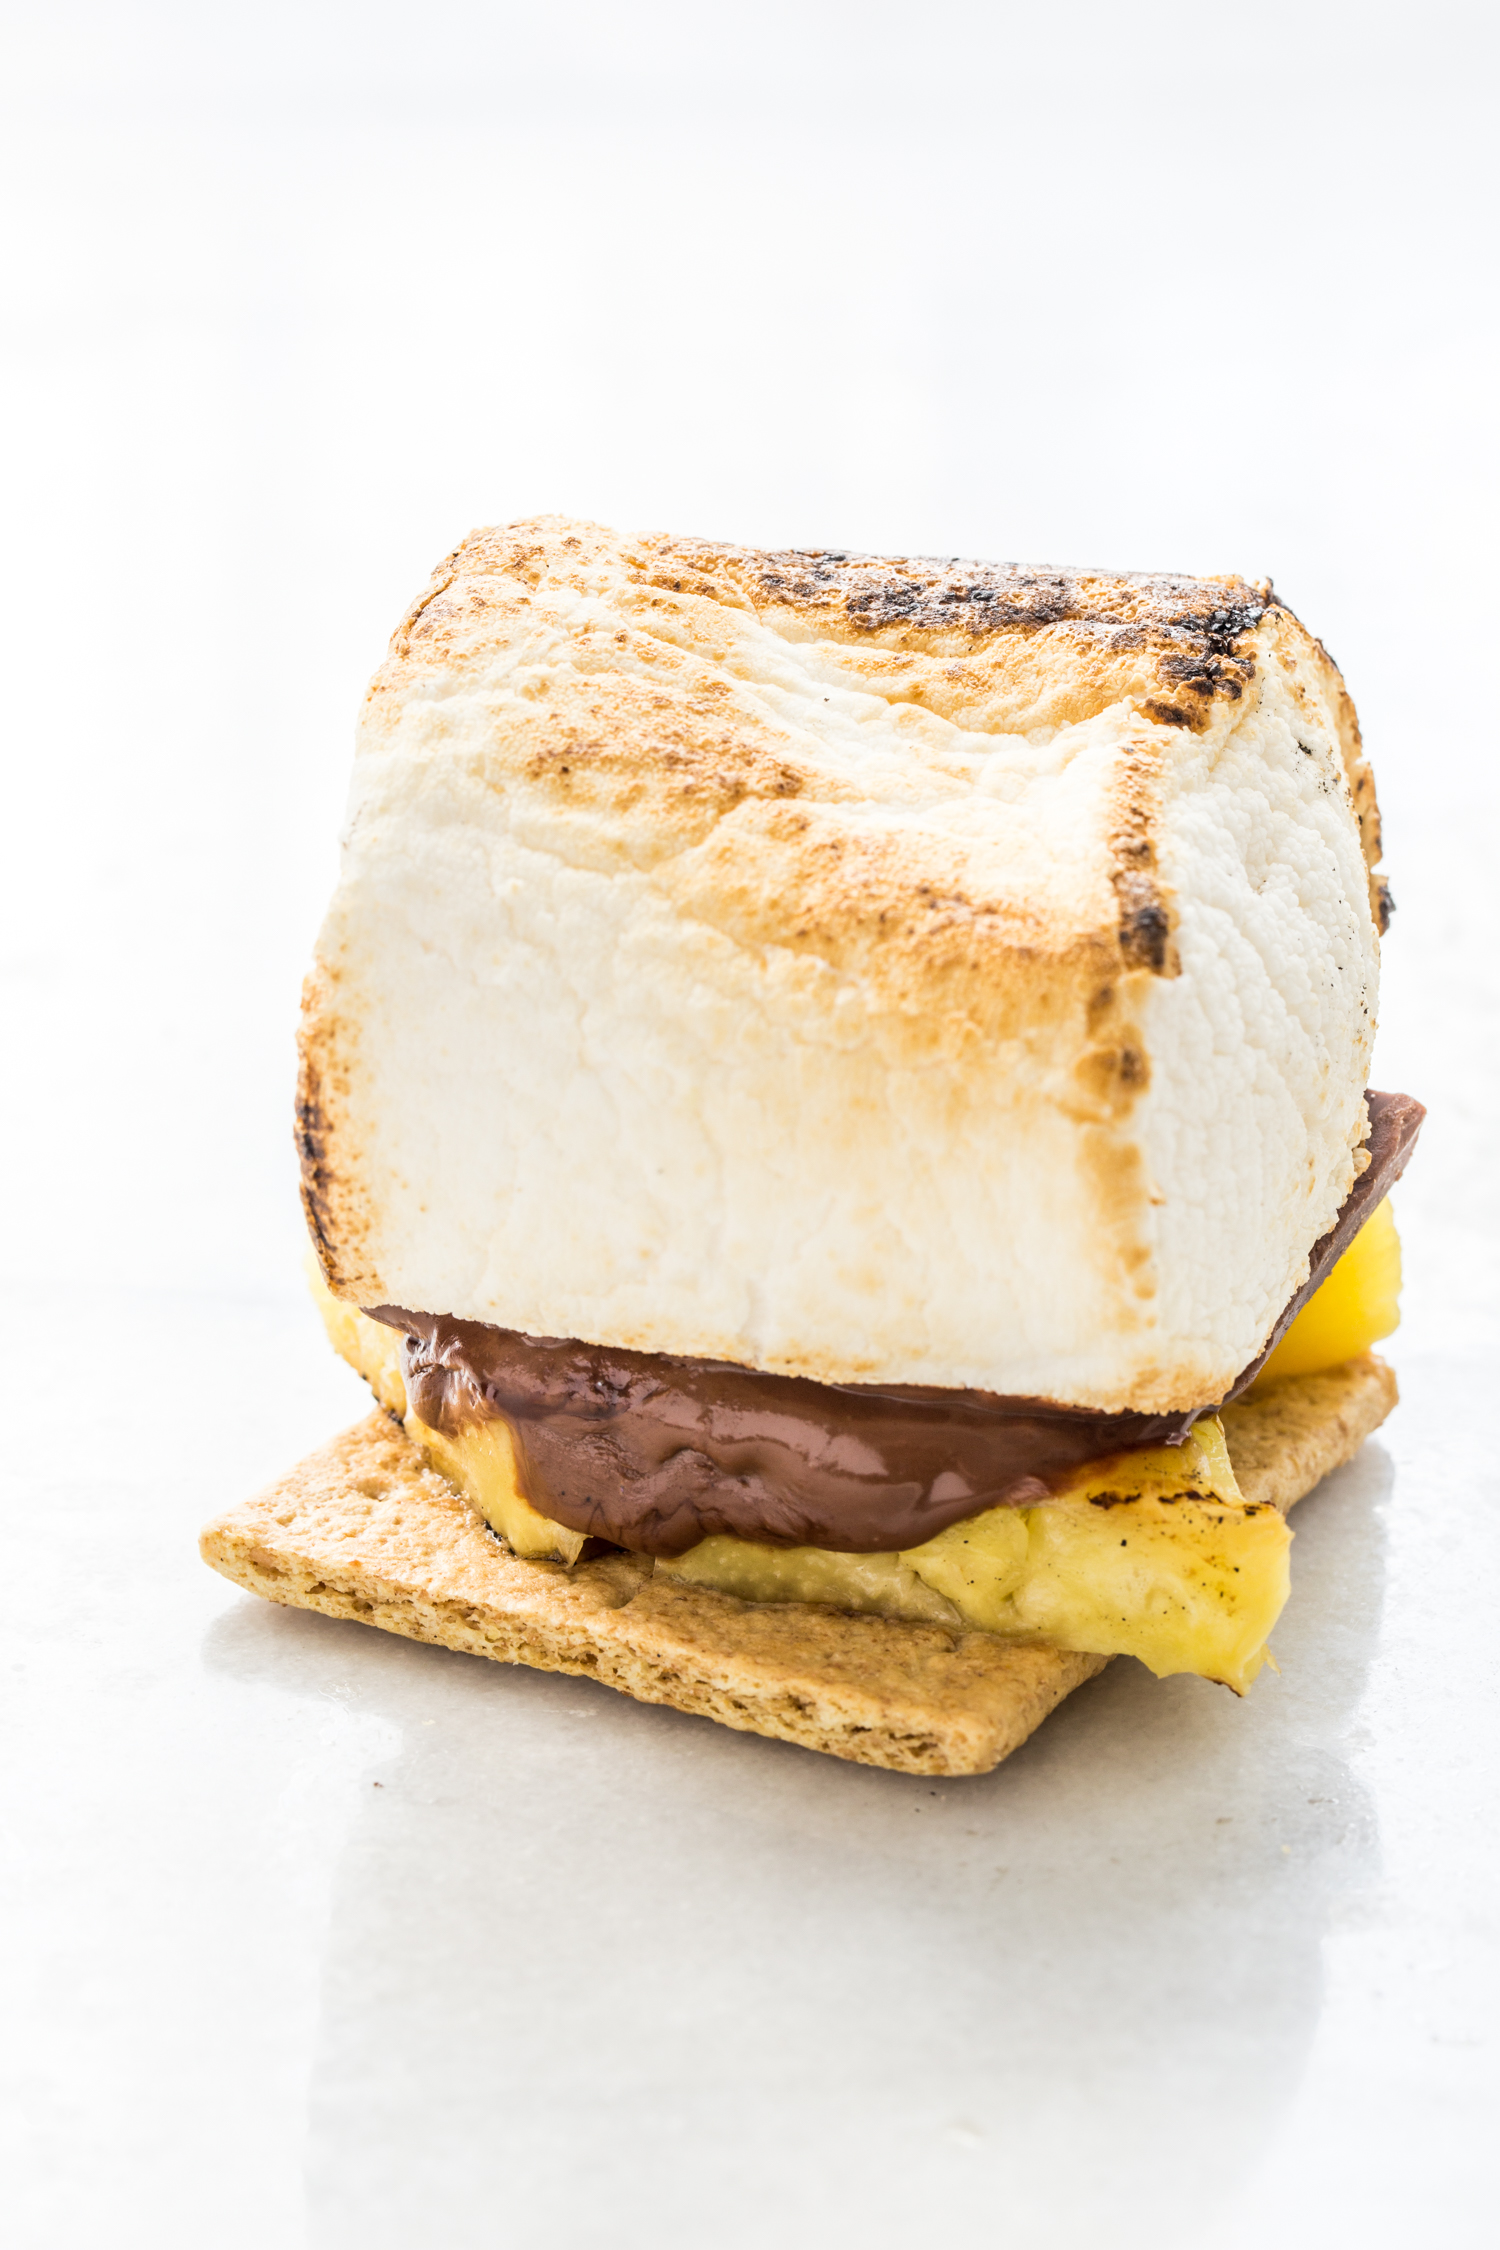 Grilled Pineapple S'mores from Jelly Toast